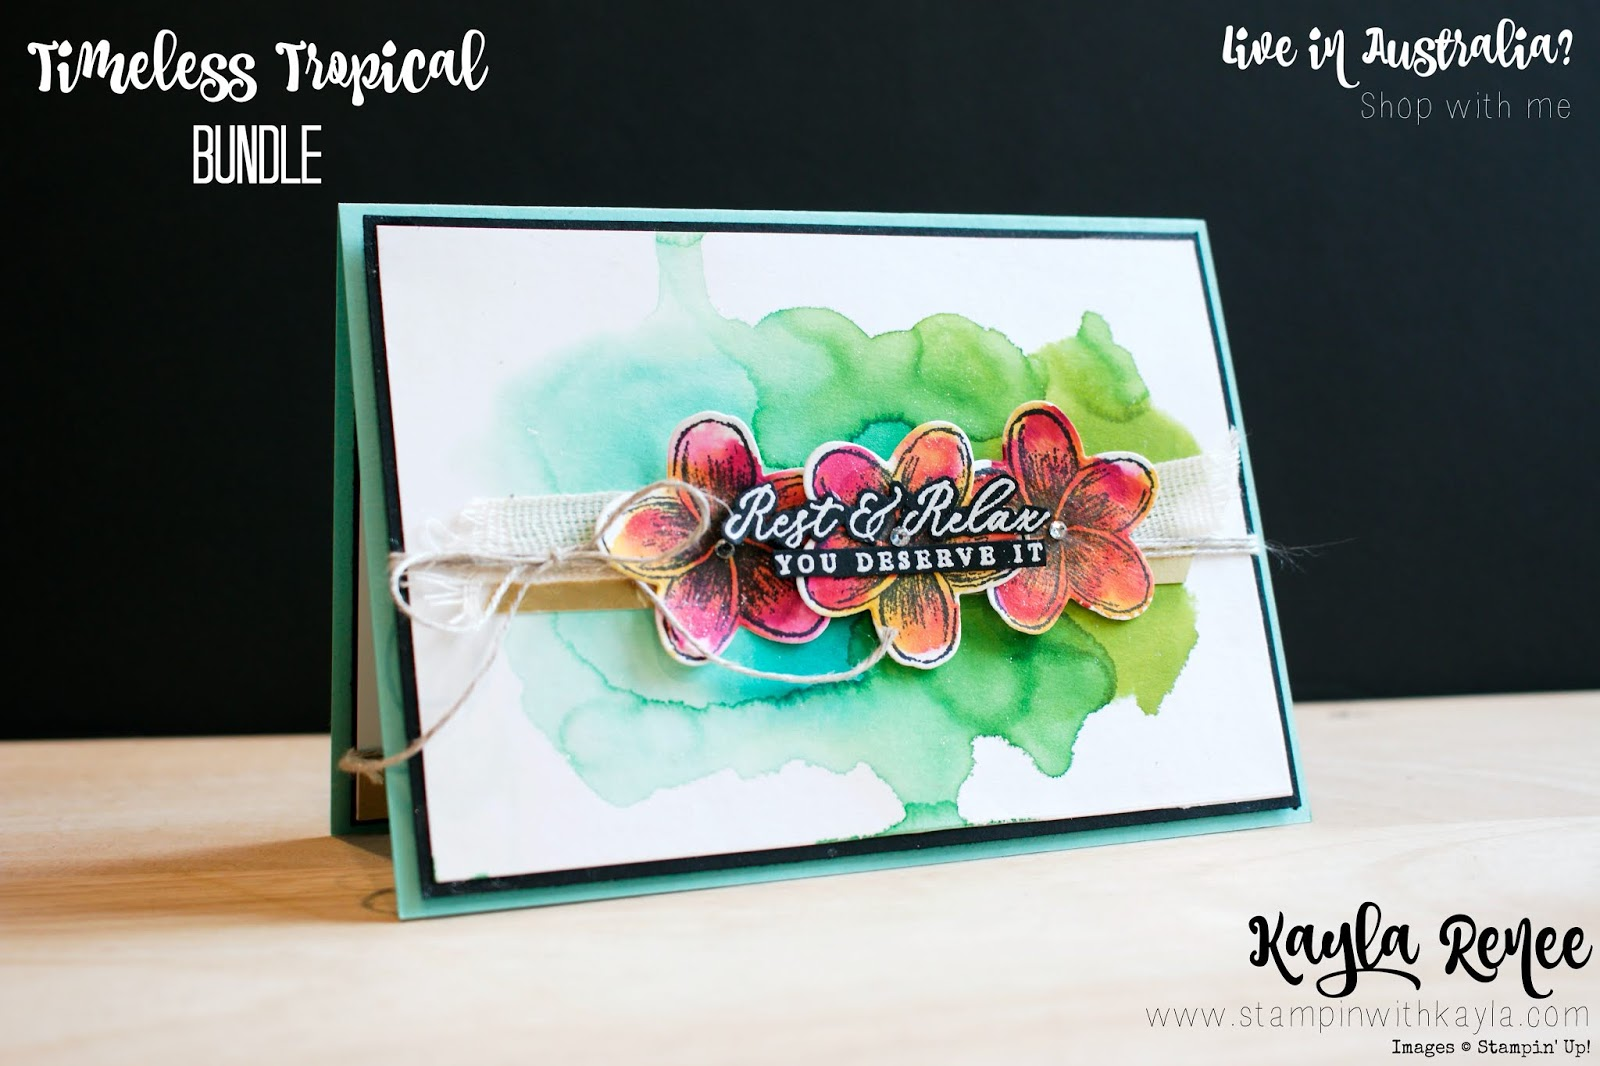 Stampin' Up! Timeless Tropical ~ Stampin' Fancy Friday ~ CASE a Fancy Friend